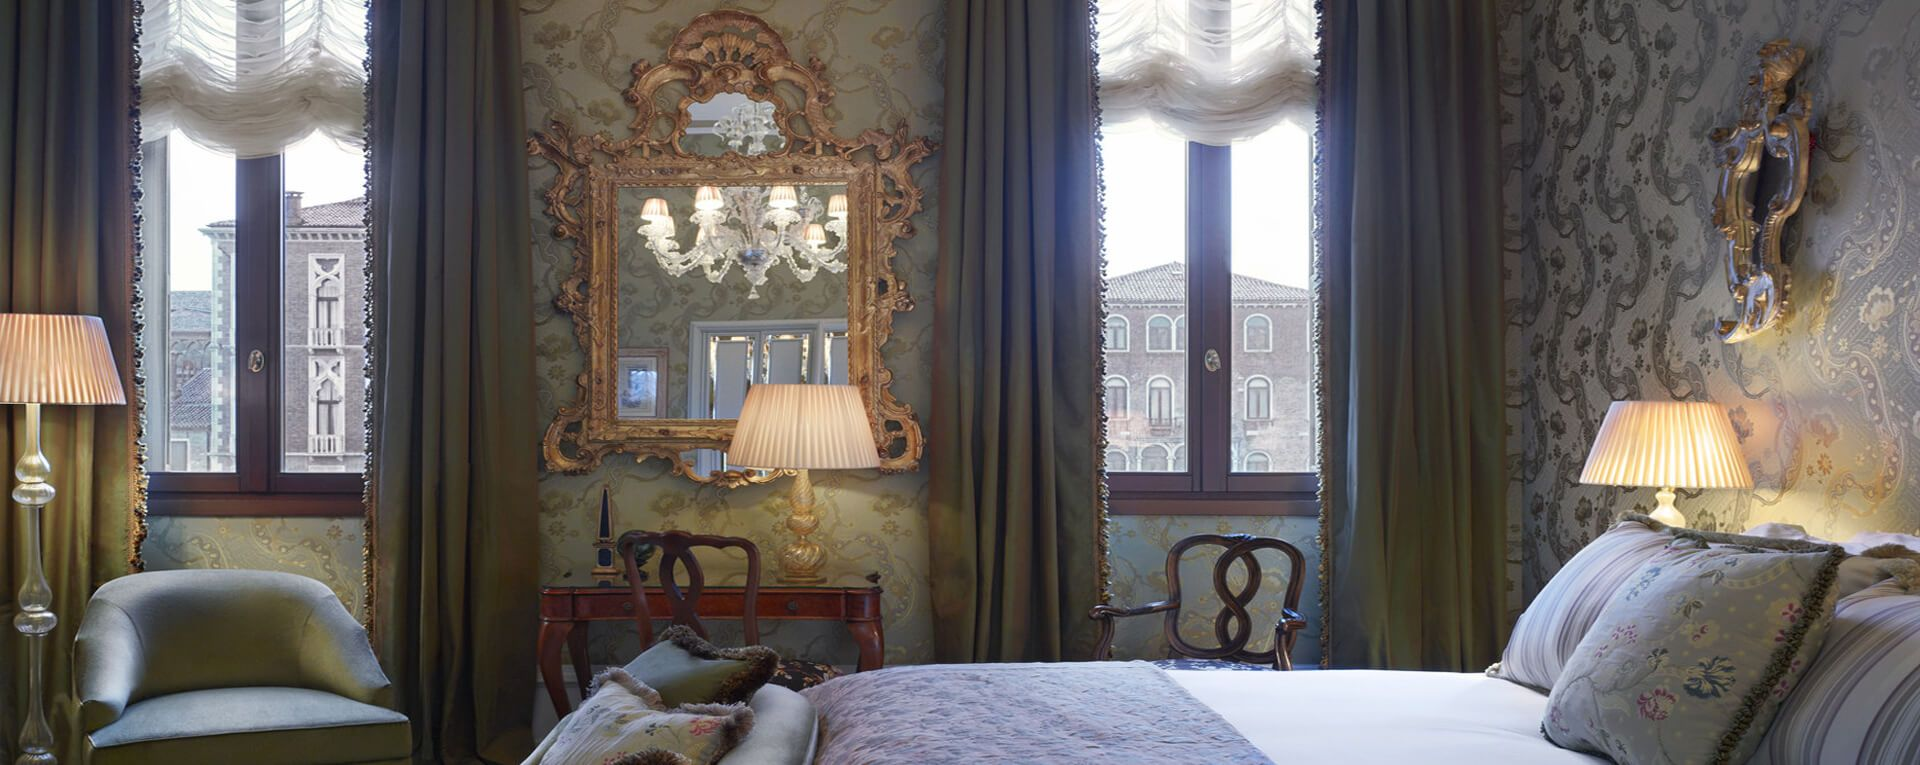 The Gritti Palace – Venice